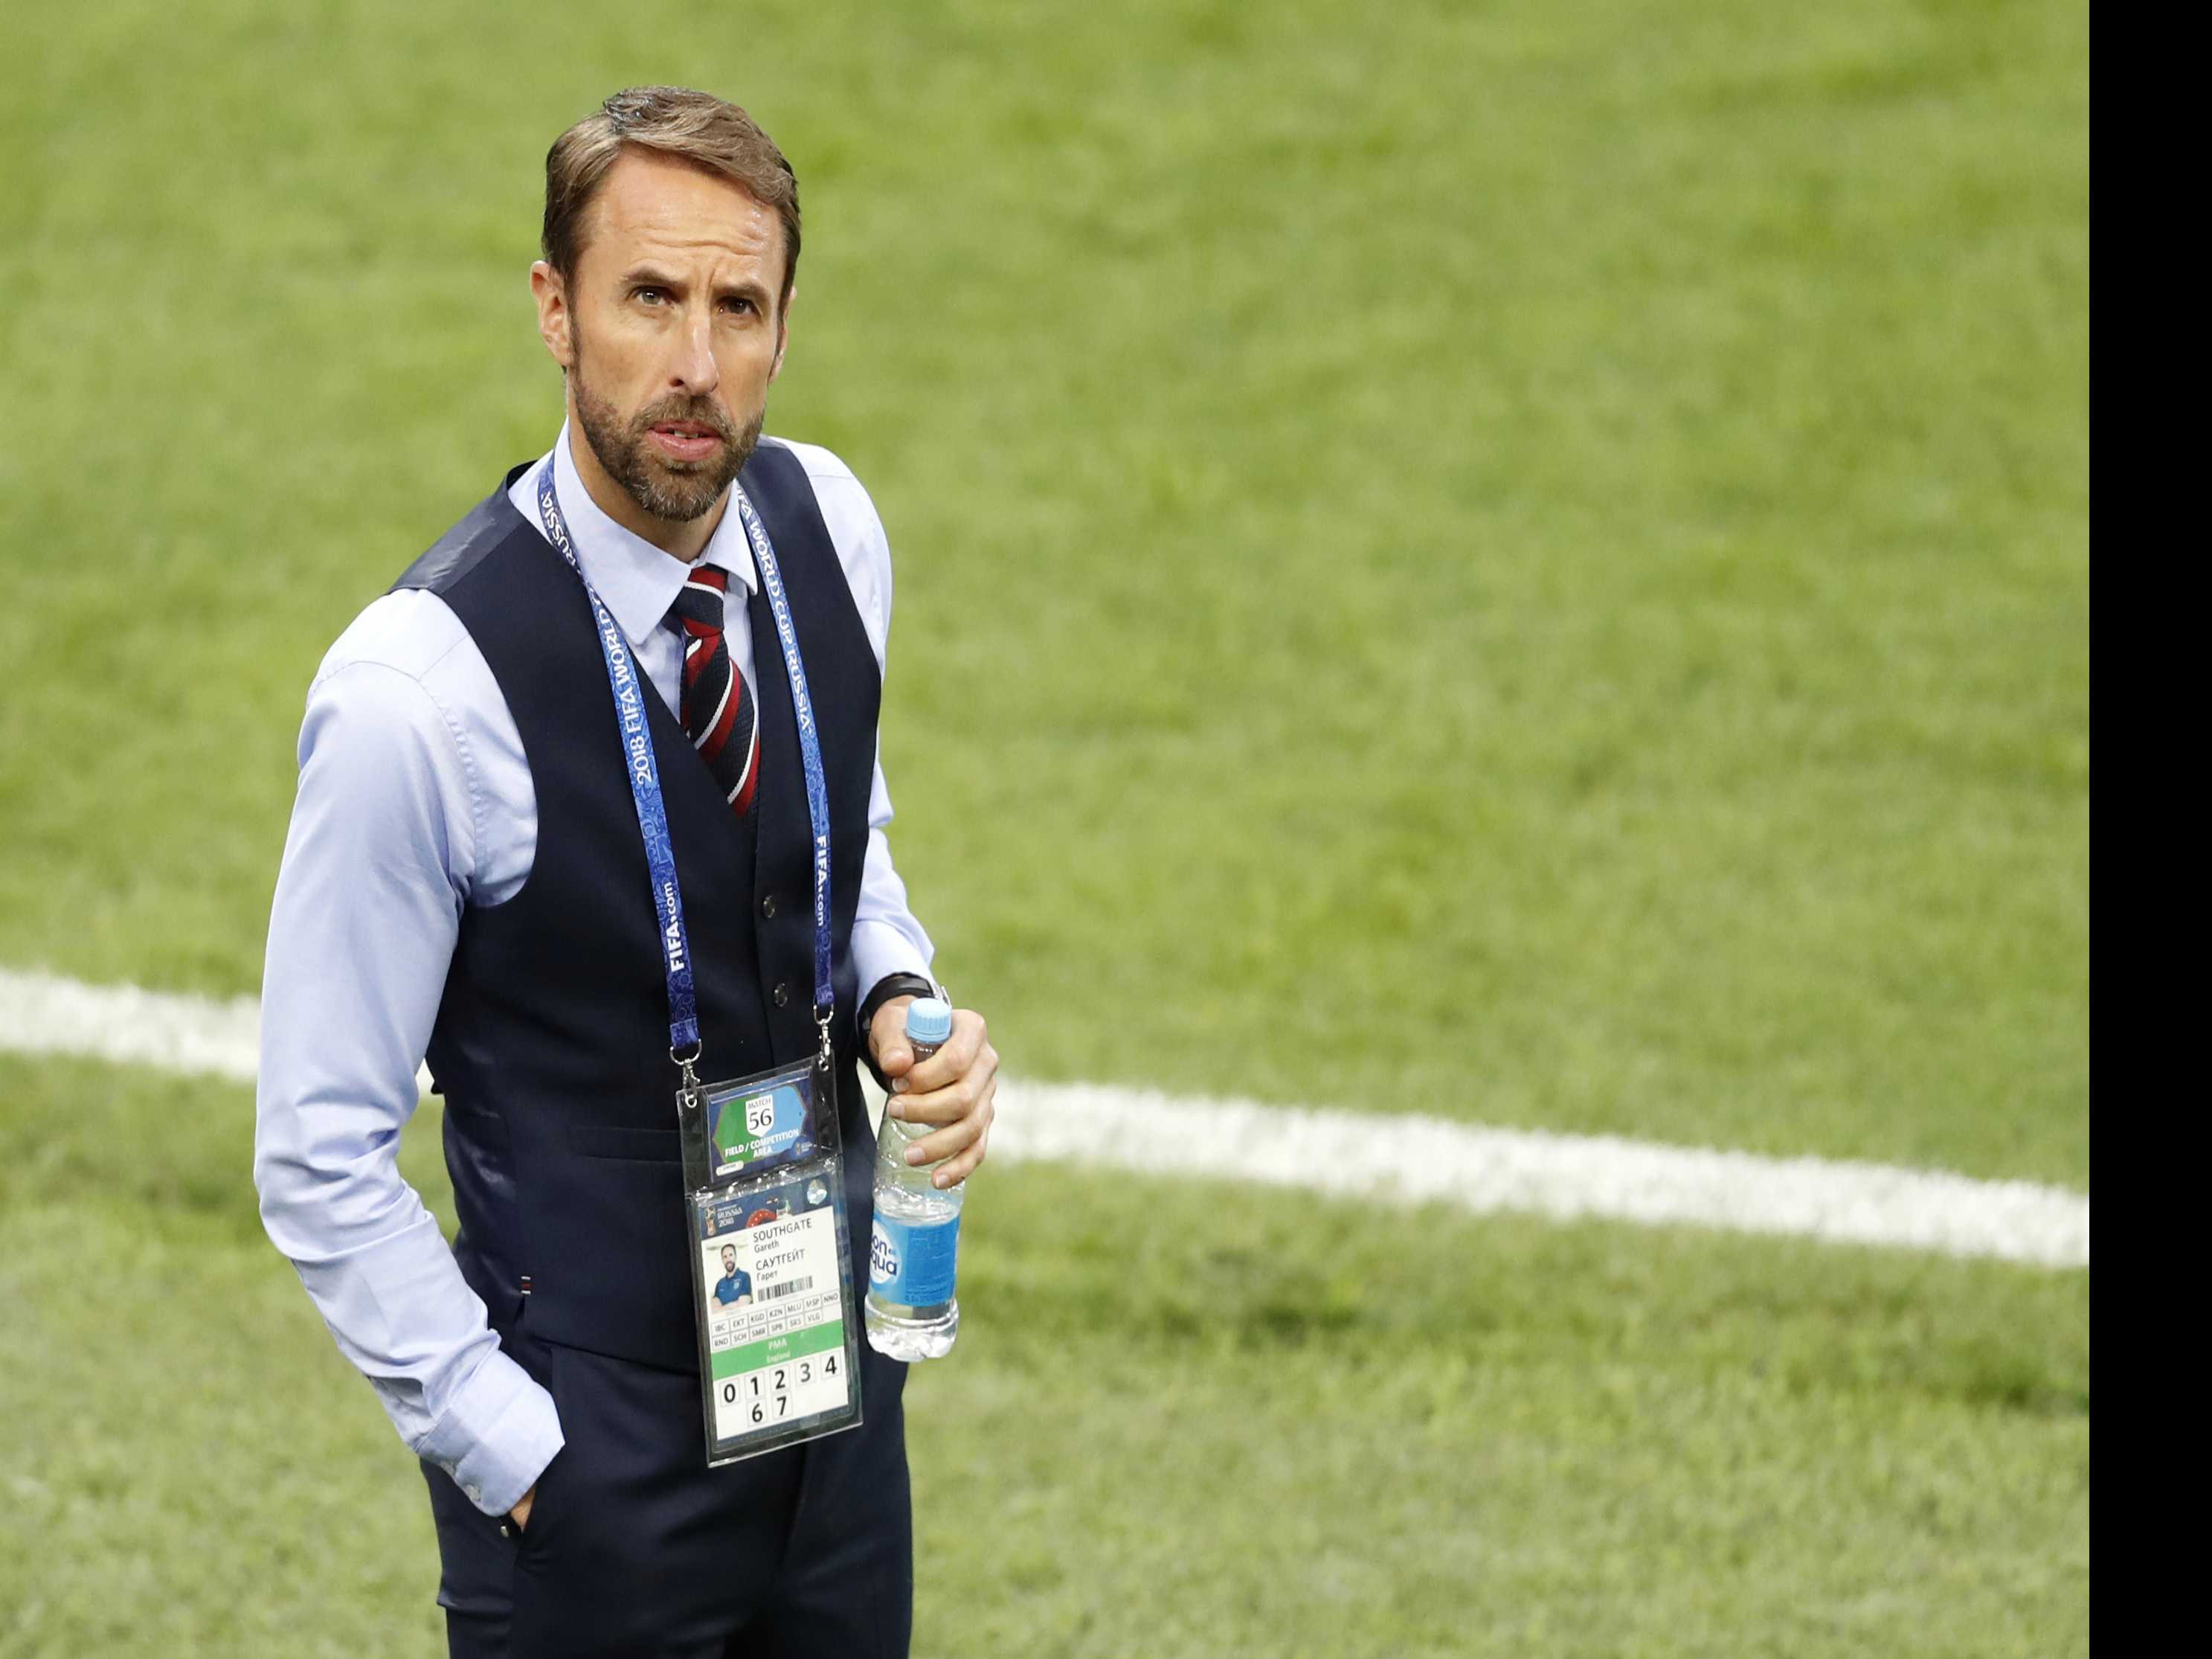 Vested Interest: Southgate Leads England in Sartorial Style